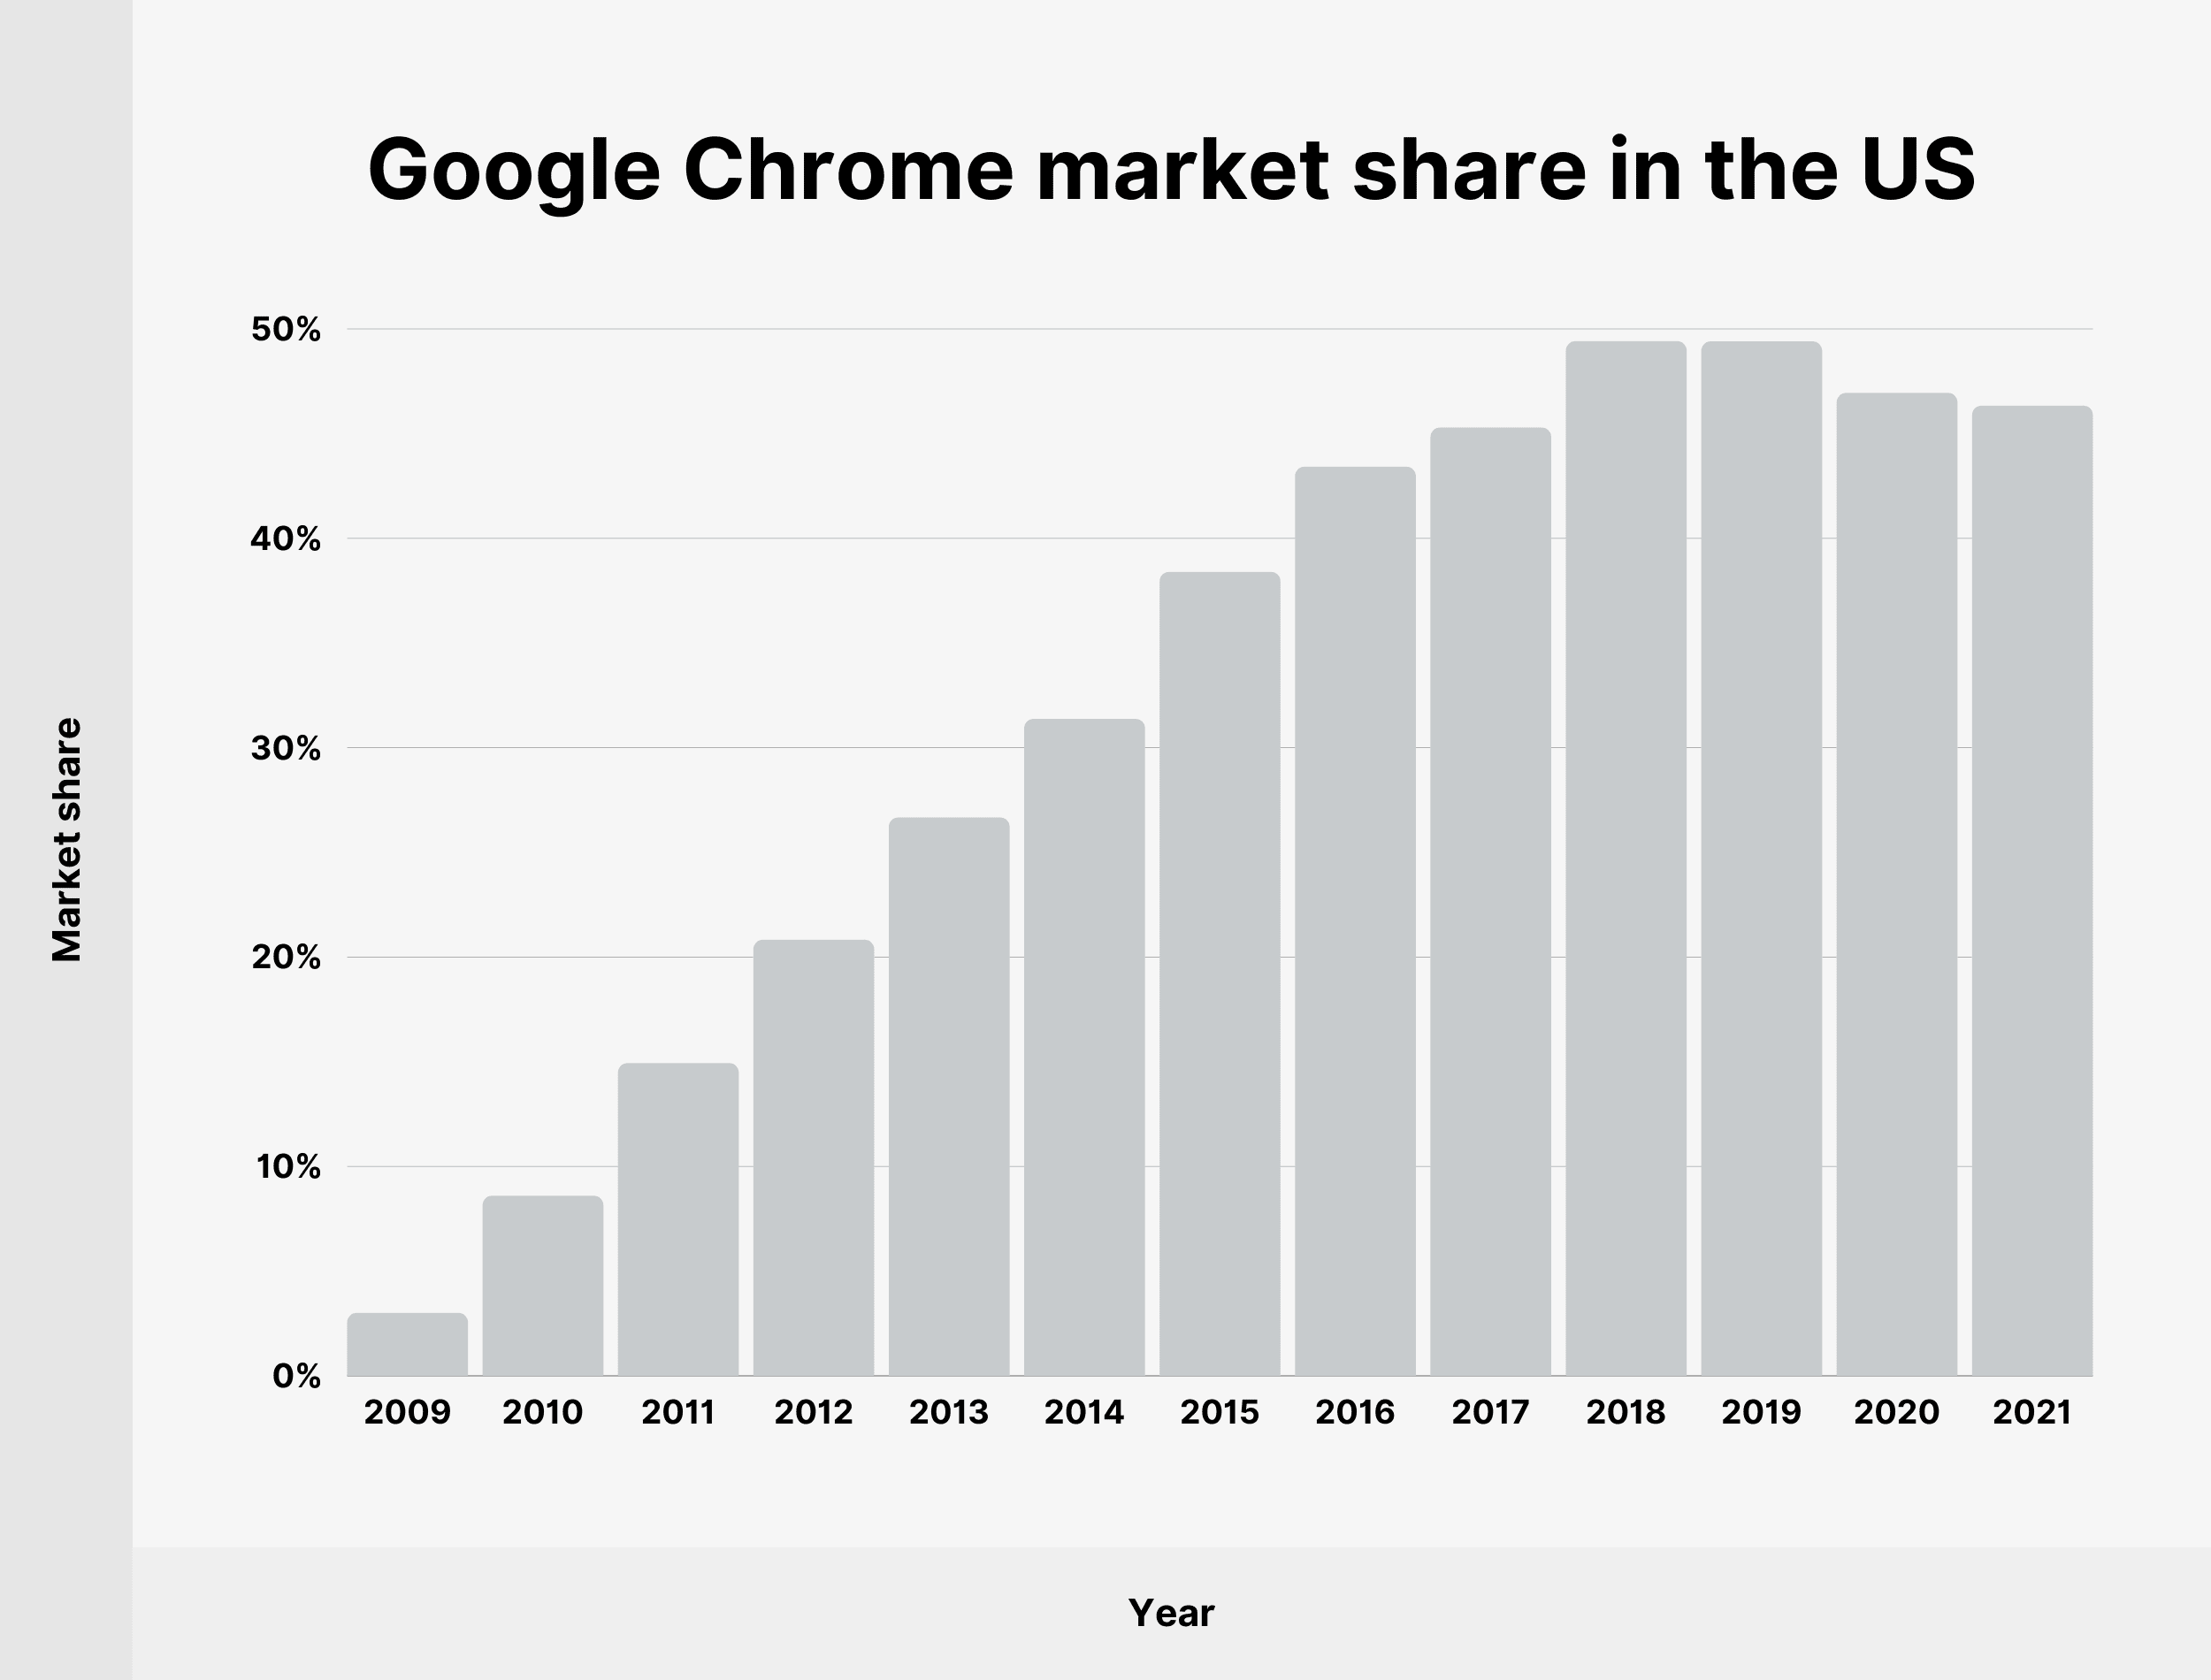 Google Chrome market share in the US